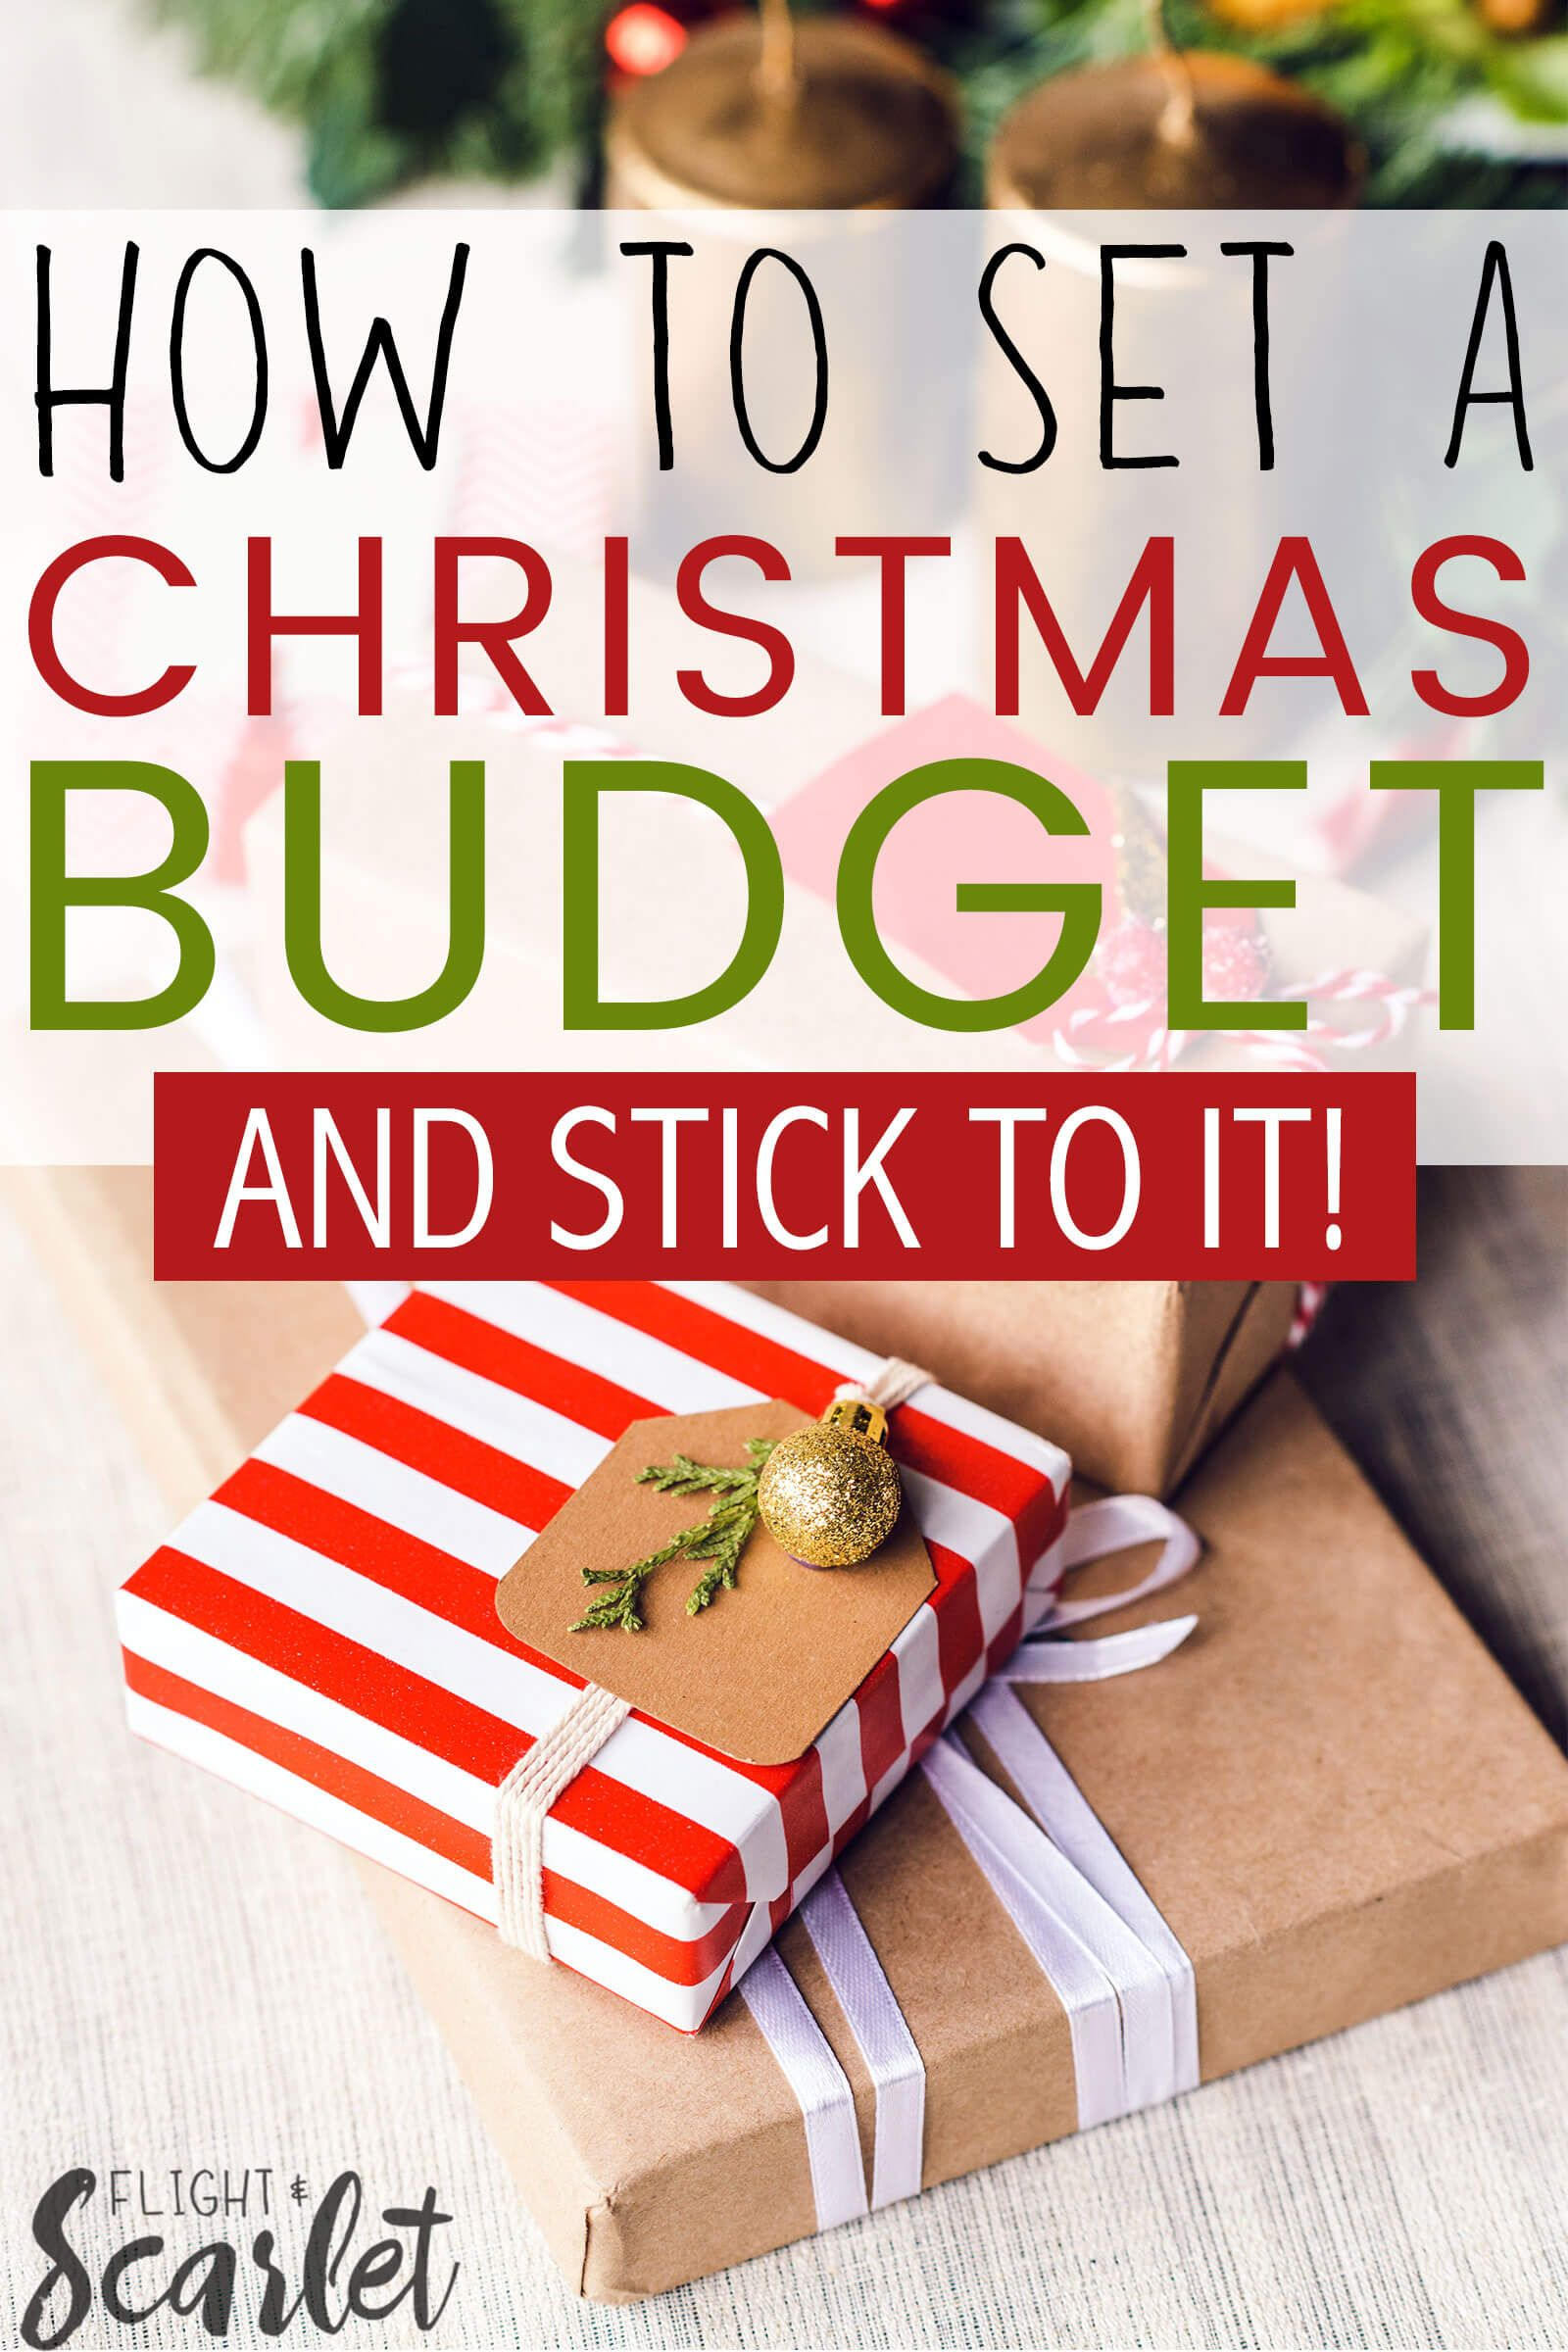 How To Set A Christmas Budget And Stick To It